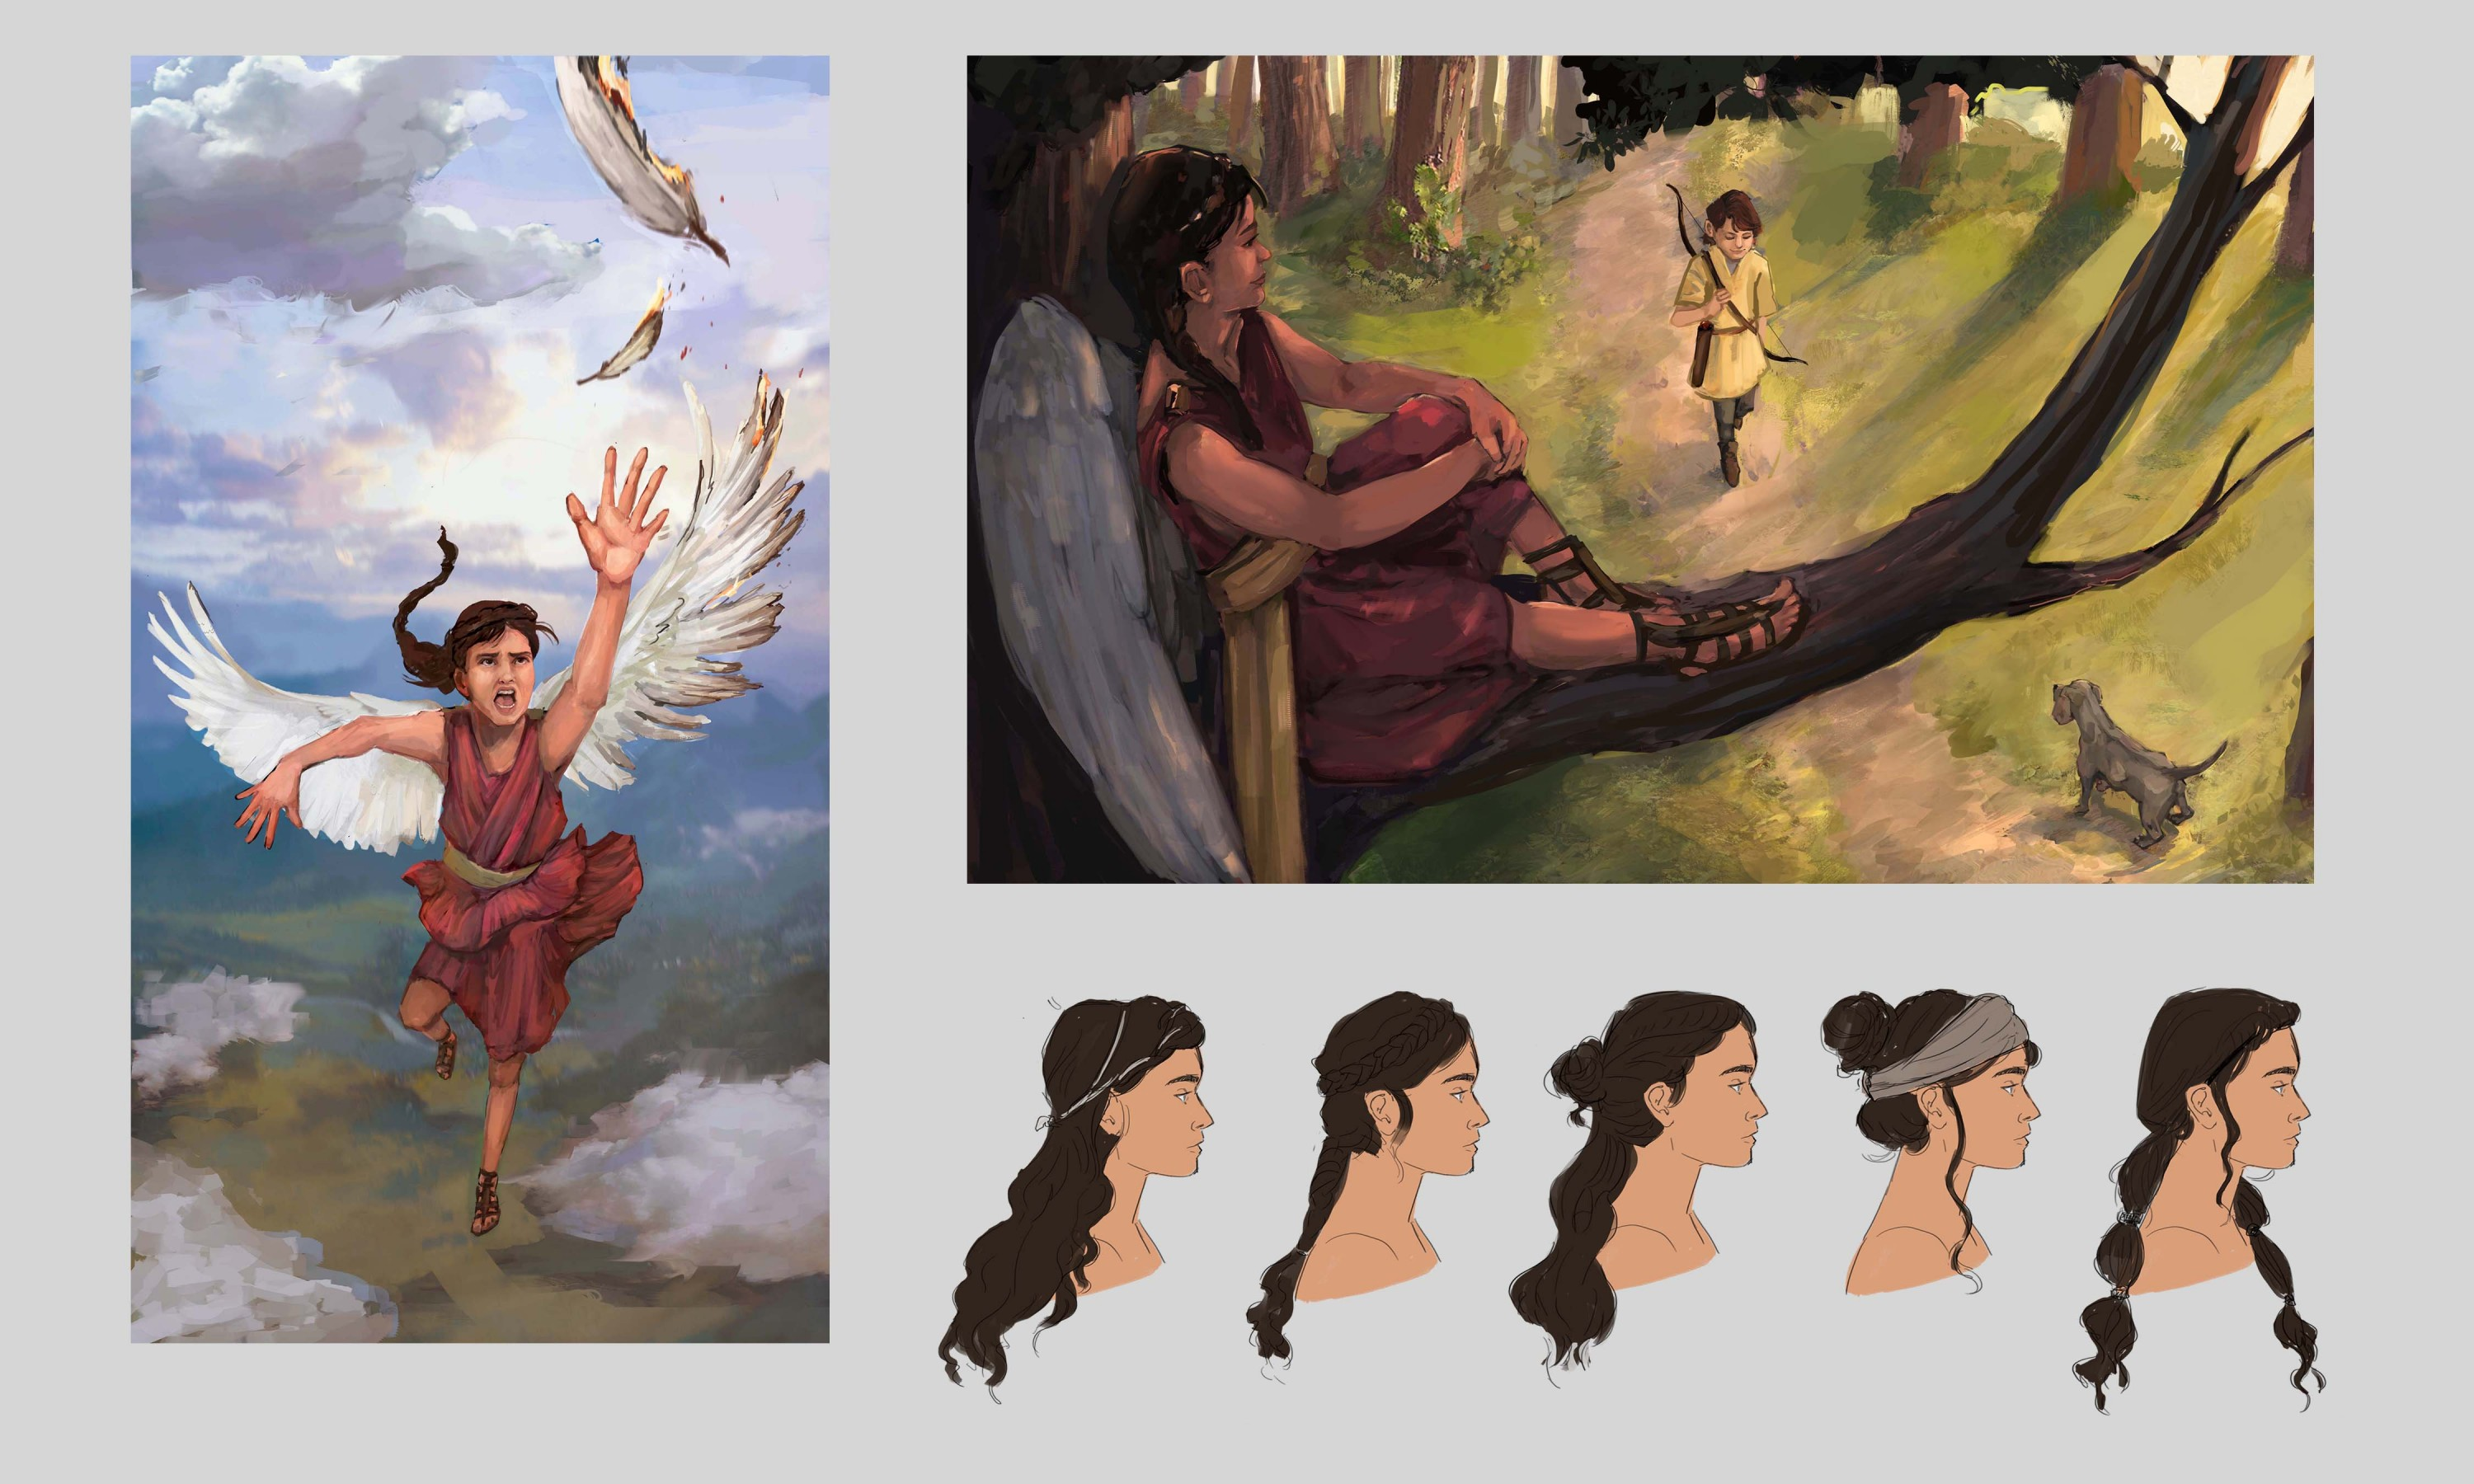 On the far left, Nike is shown with damaged wings. She is falling from the sky. On the top right, Nike is sitting on top of a tree branch. She looks down at a young boy who is playing with his dog. On the bottom right, hair style options are shown of Nike